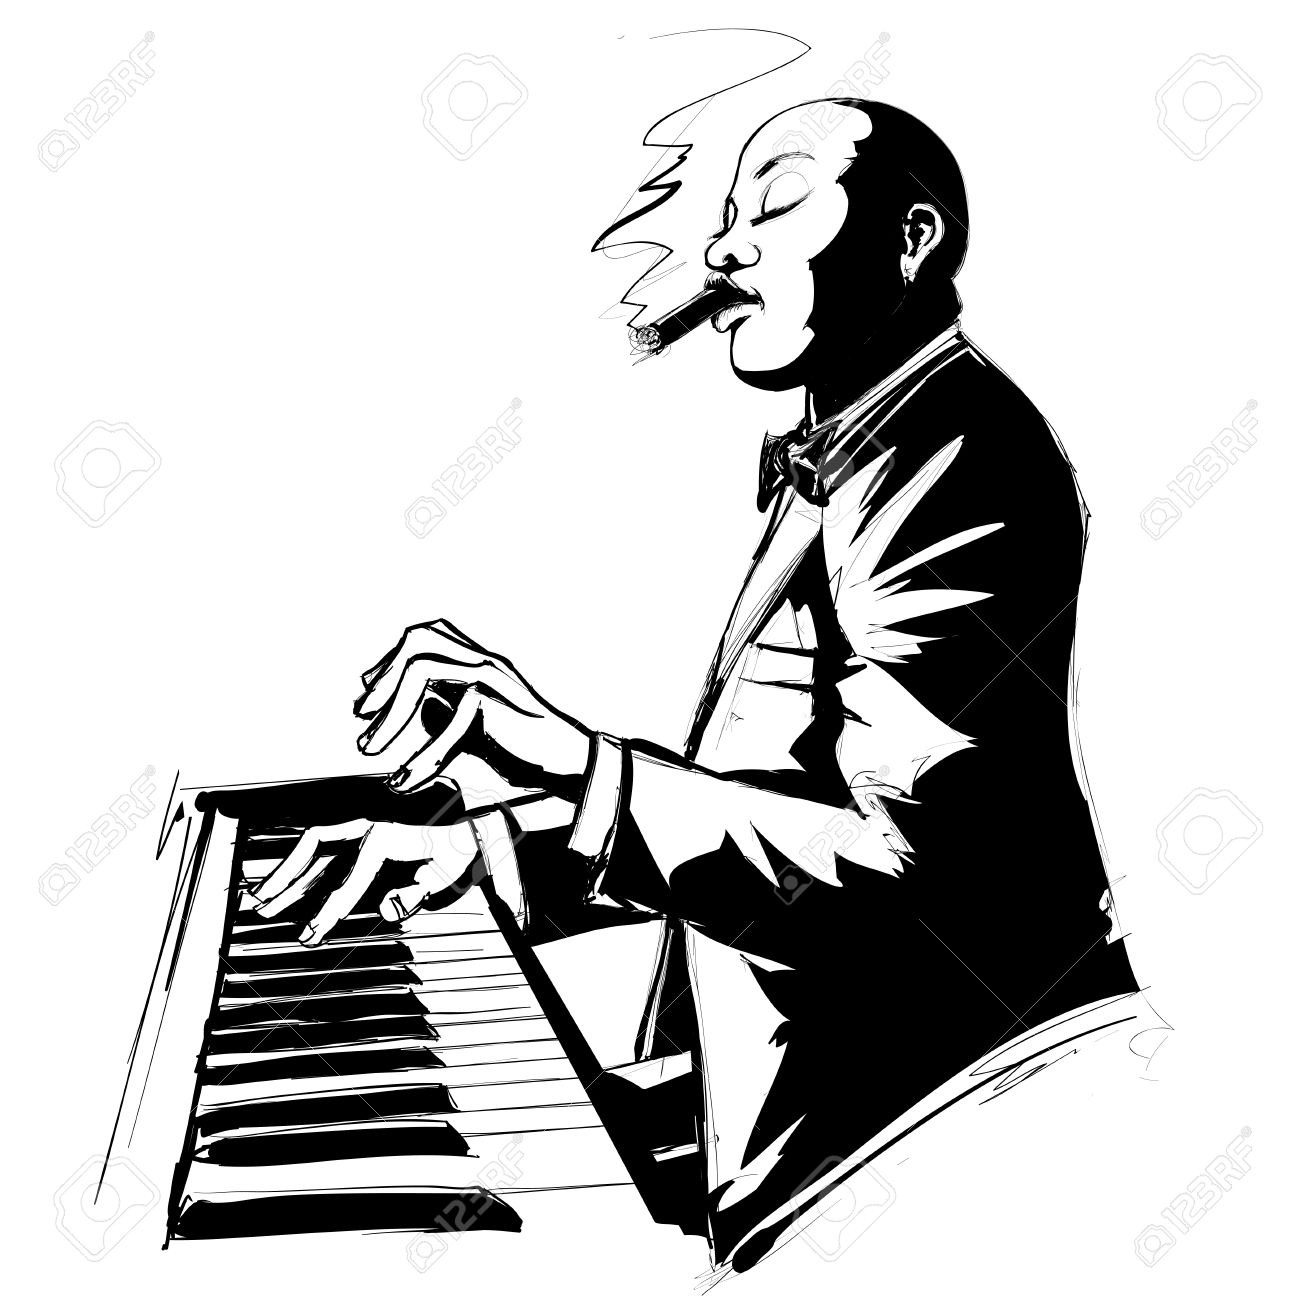 1300x1300 Jazz Pianist In Black And White Smoking Cigar